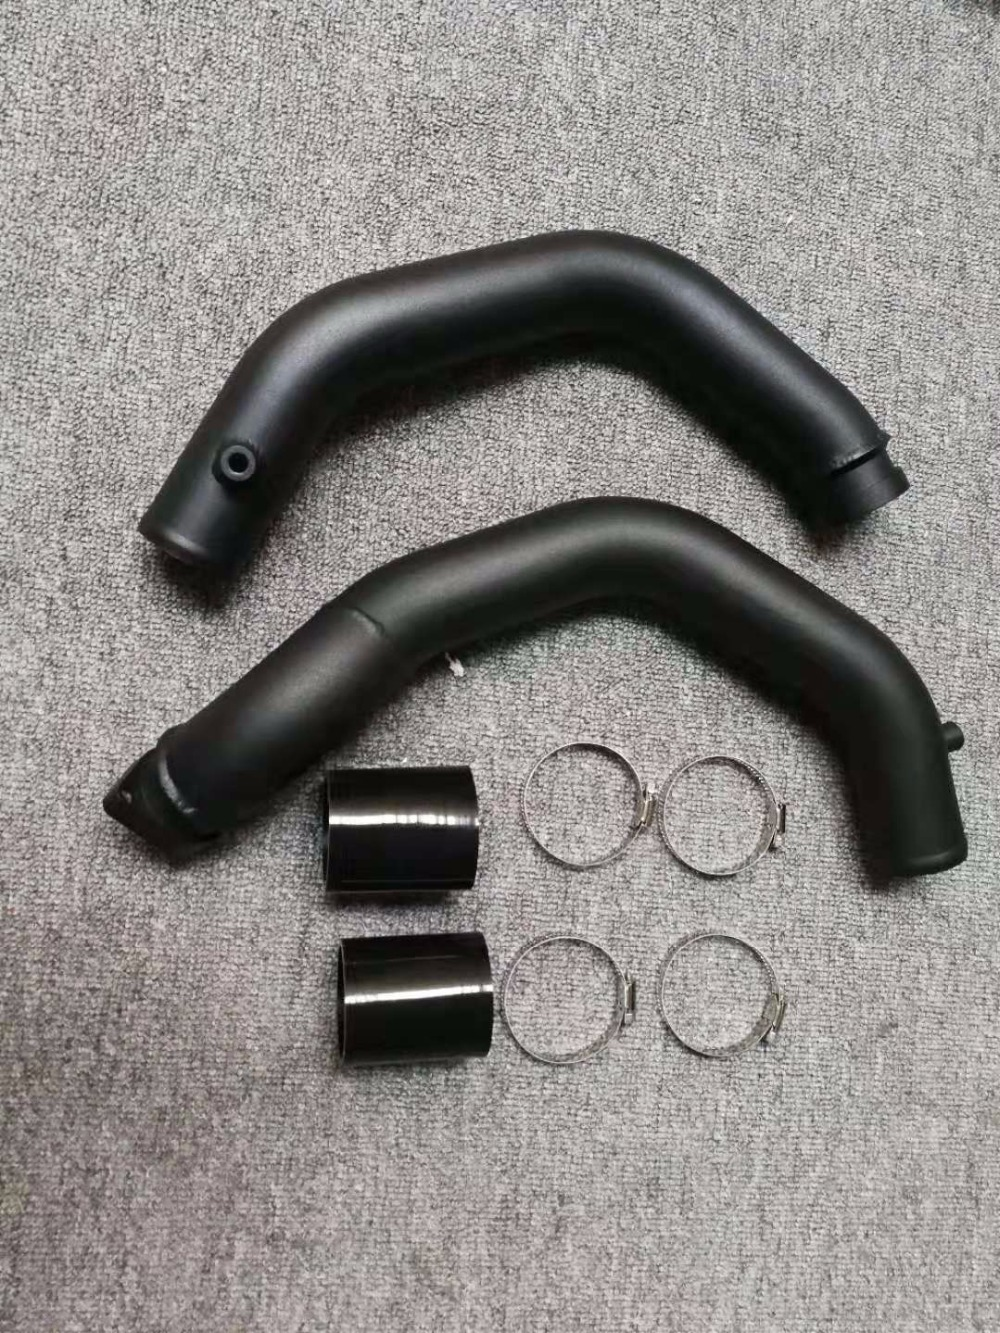 Aluminium Chargepipe For Bmw F80 M3 M4